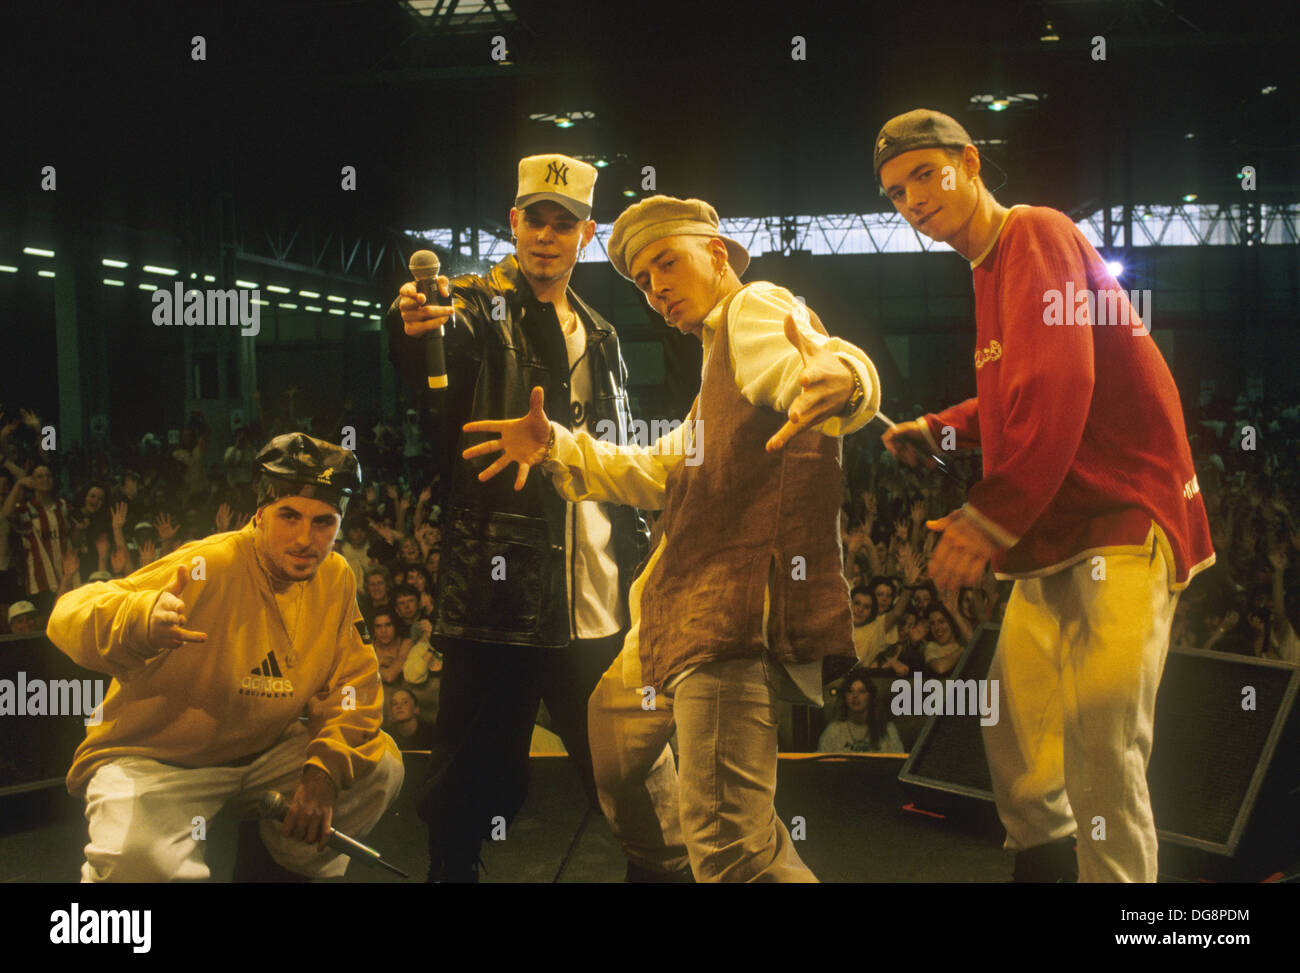 E-17 (later East 17) UK pop group about 1998 - Stock Image